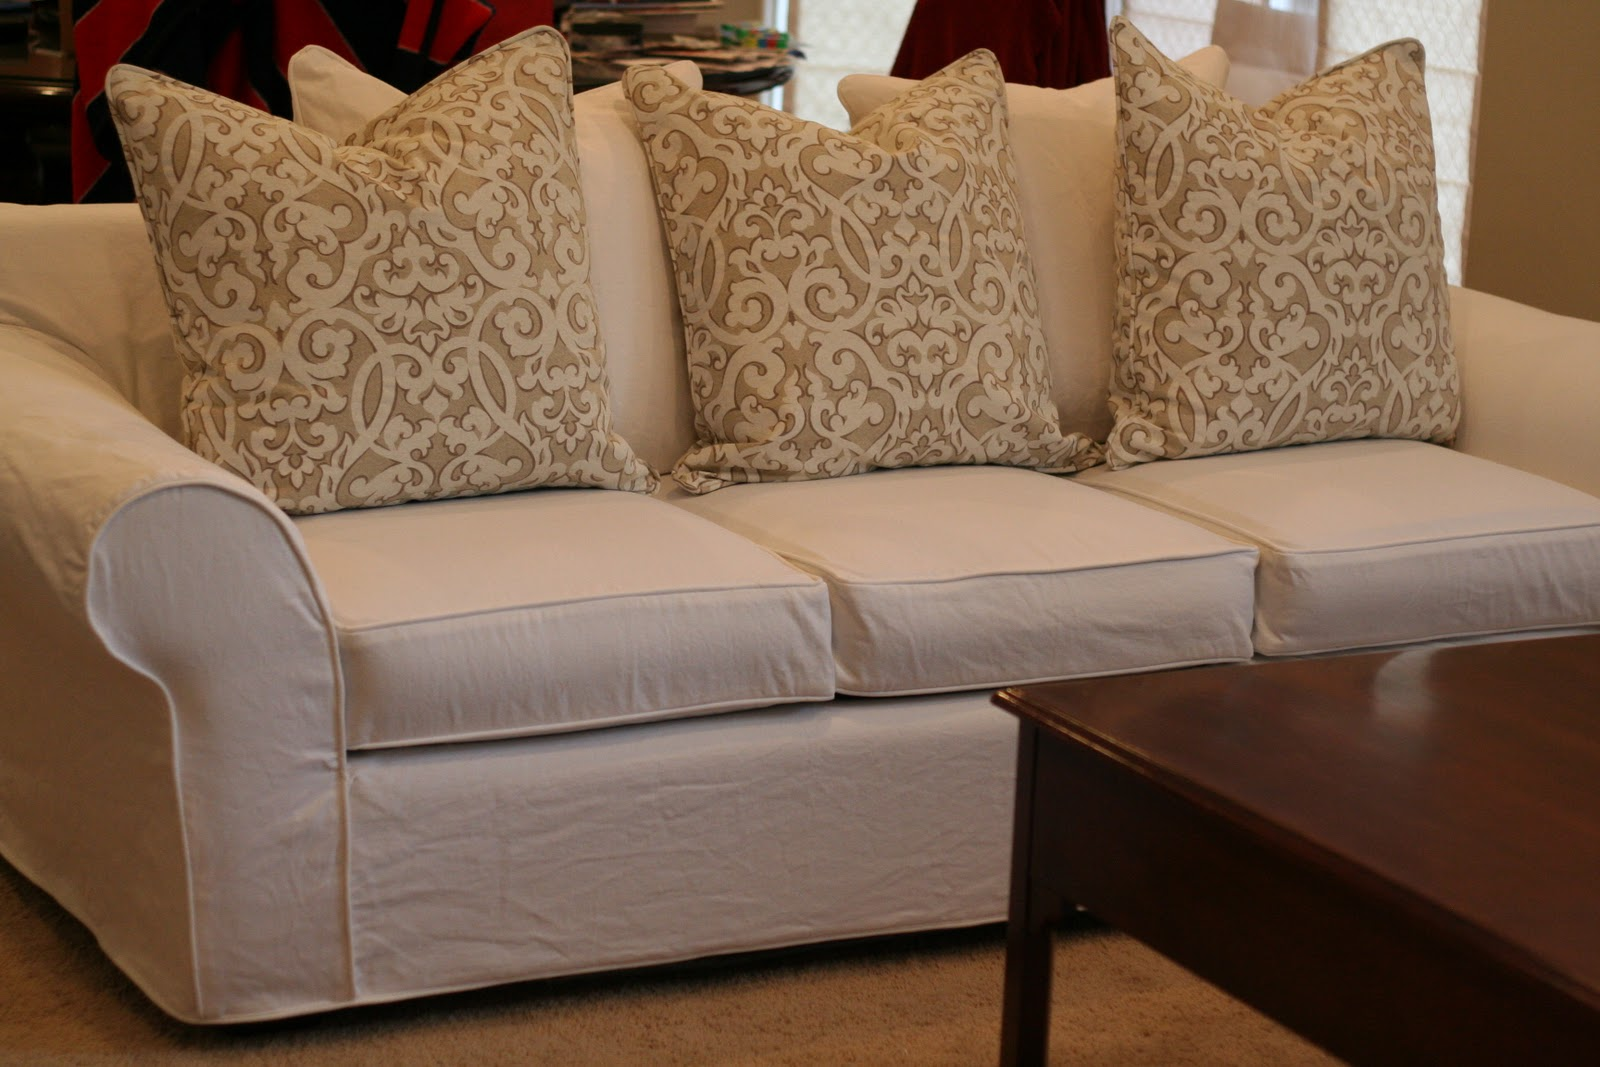 Sofa Back Pillows Cheap Modular Sydney Pillow Slipcovers Cozy Cottage From